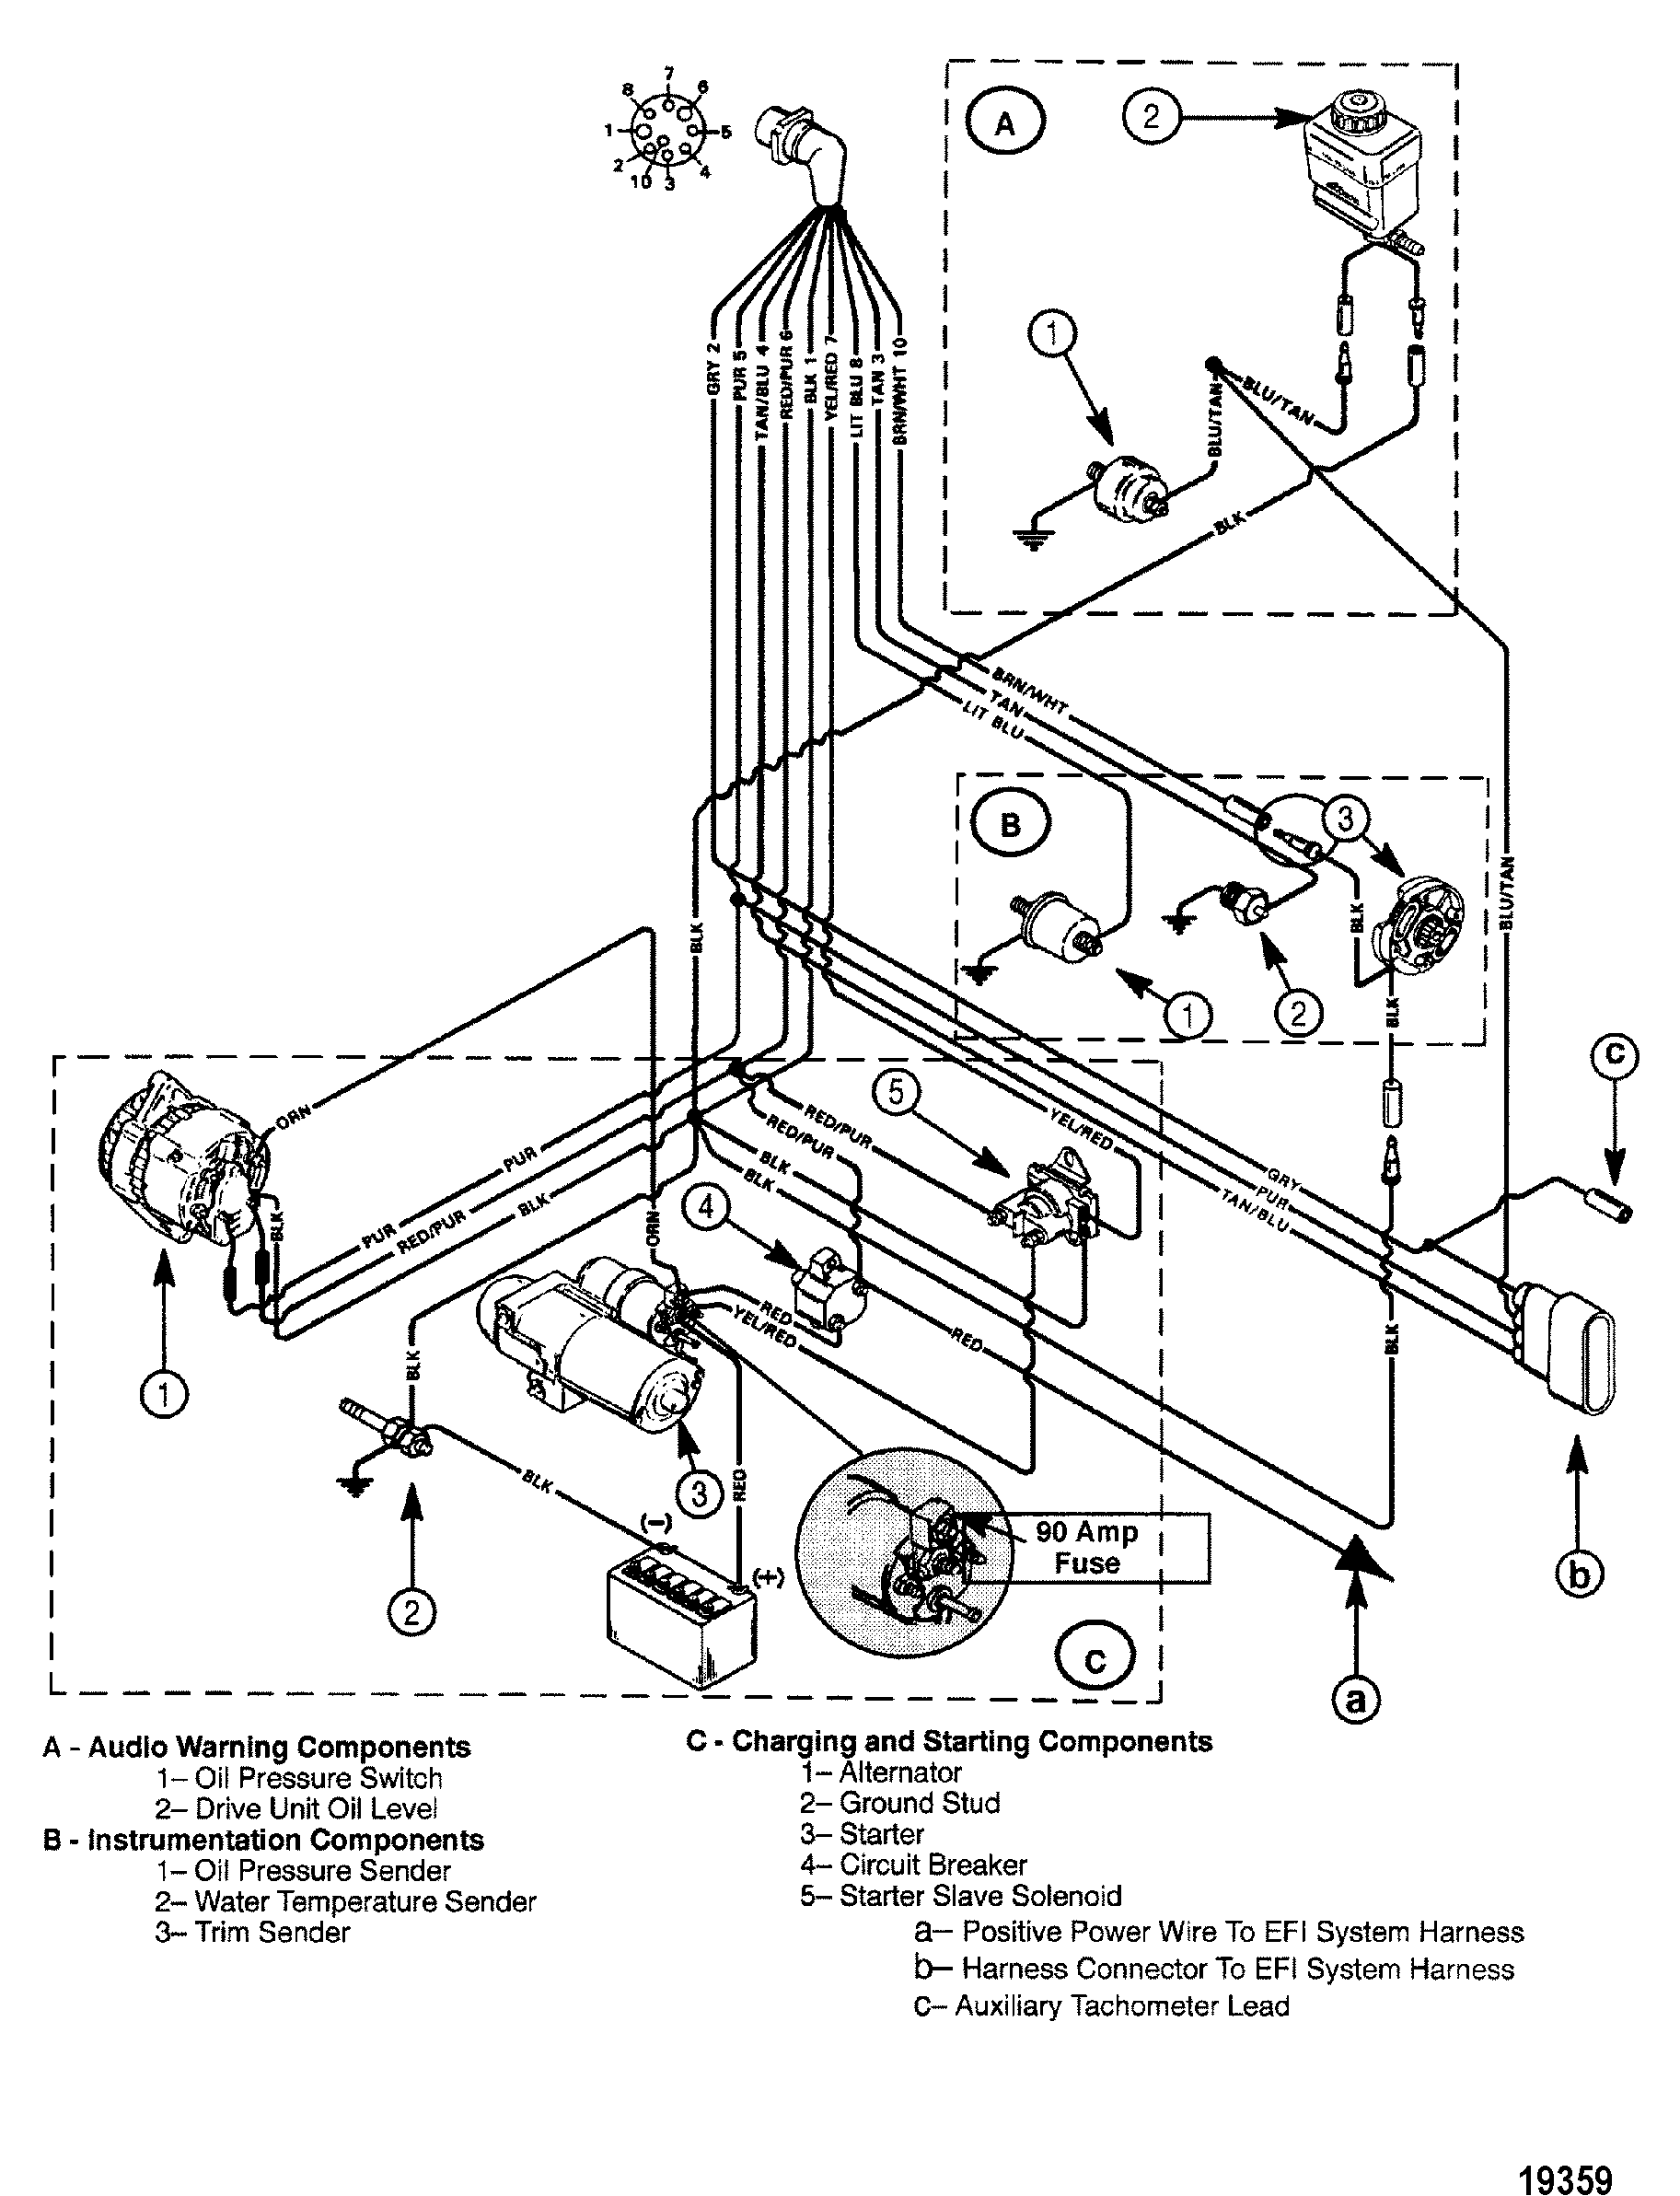 gm starter solenoid wiring diagram gm discover your wiring 5 7 mercruiser engine wiring harness diagram